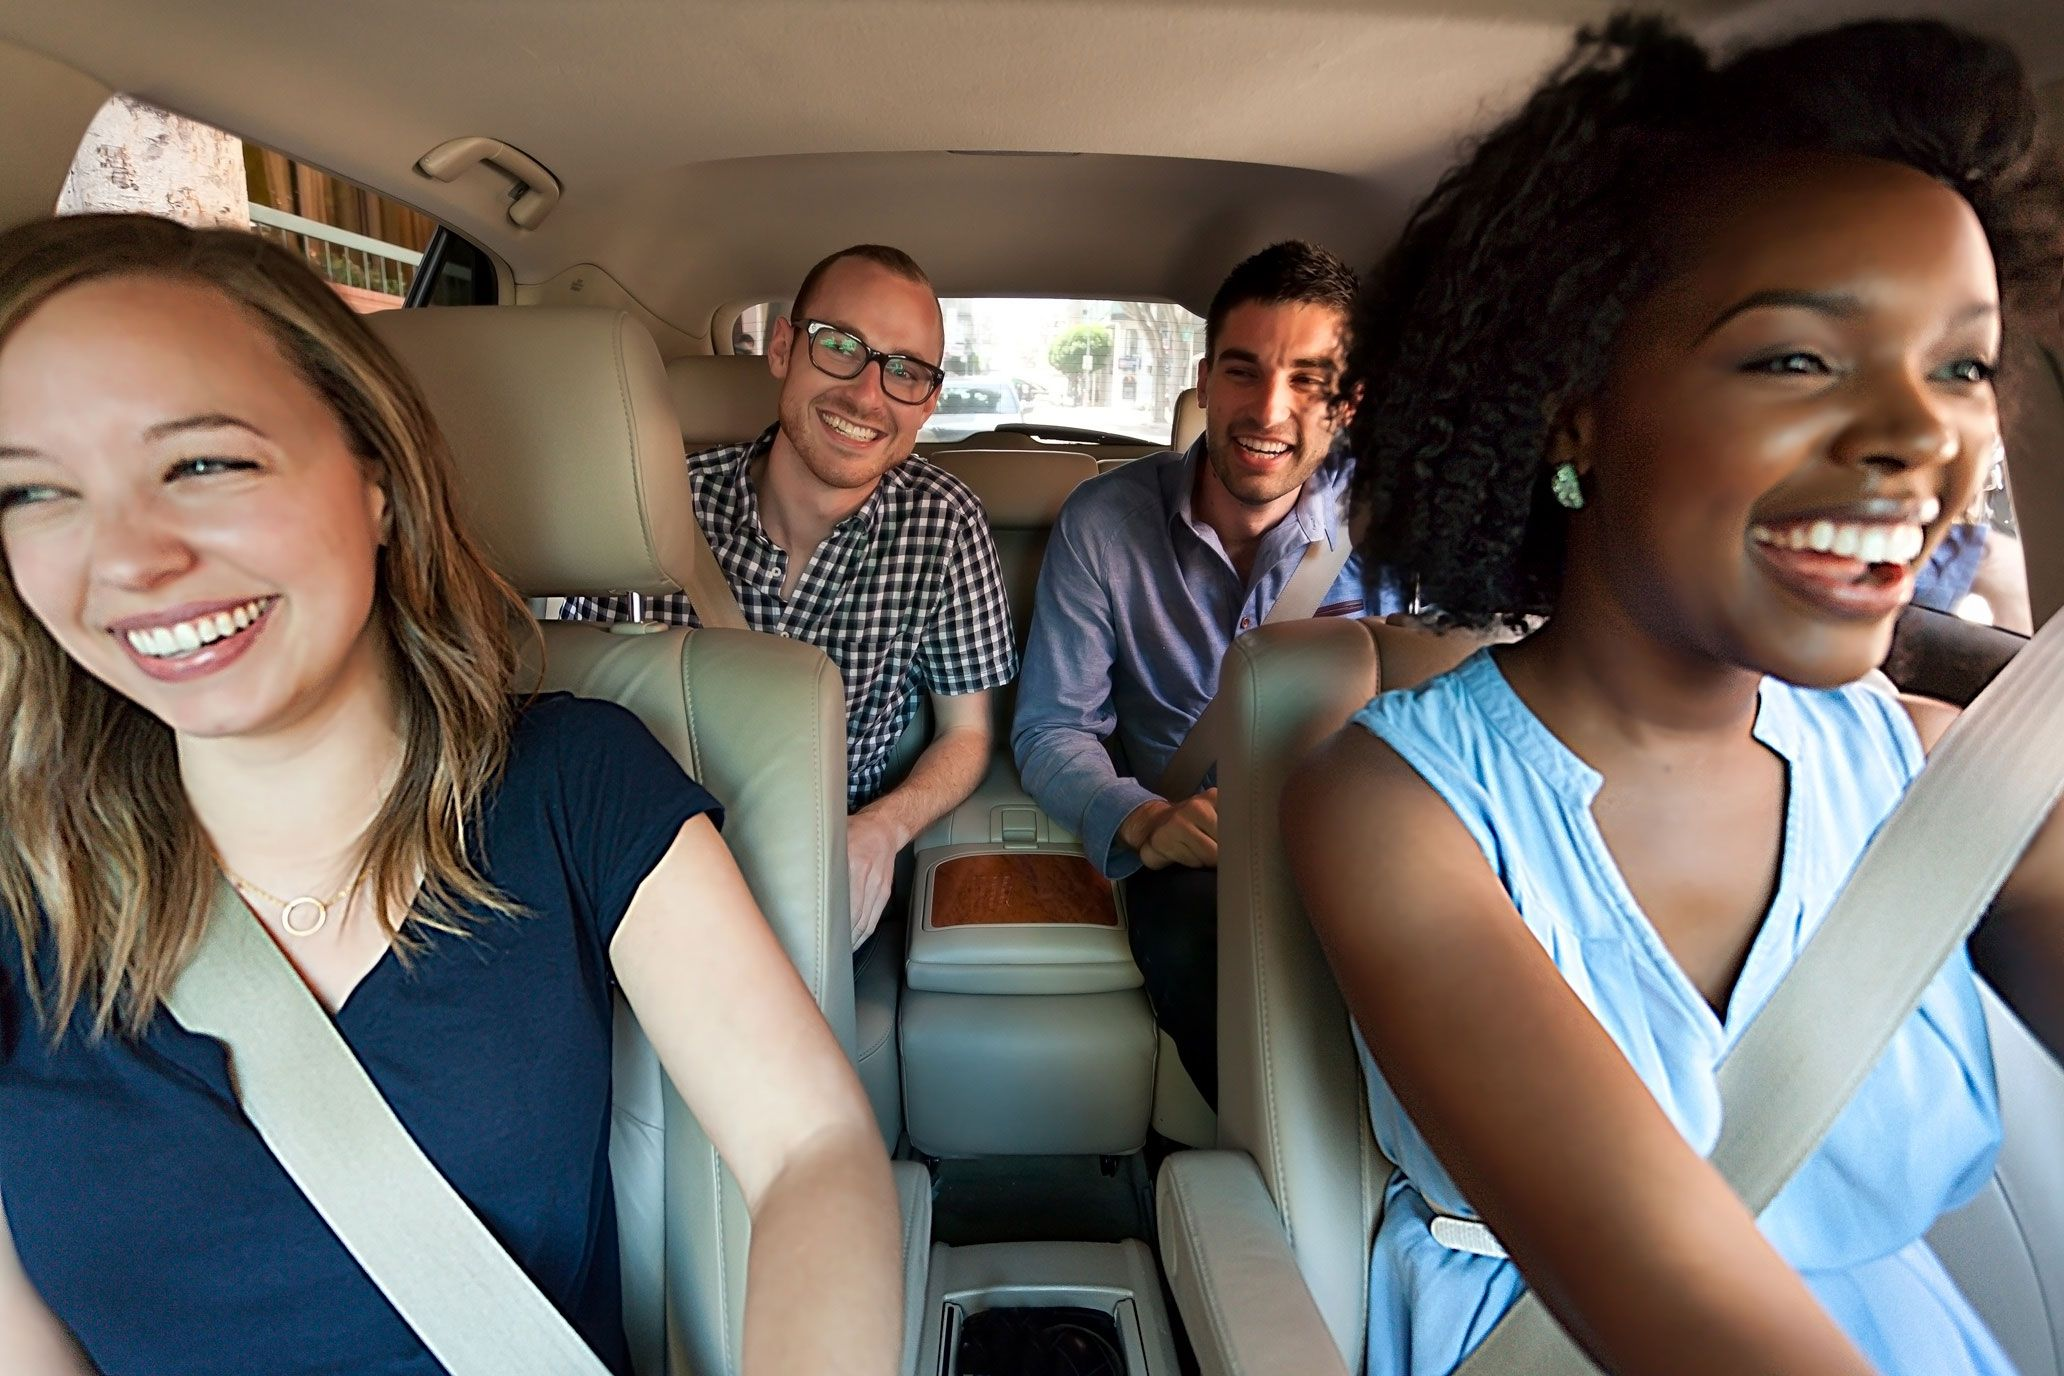 How to get lyft rides for 10 off jobs for women part